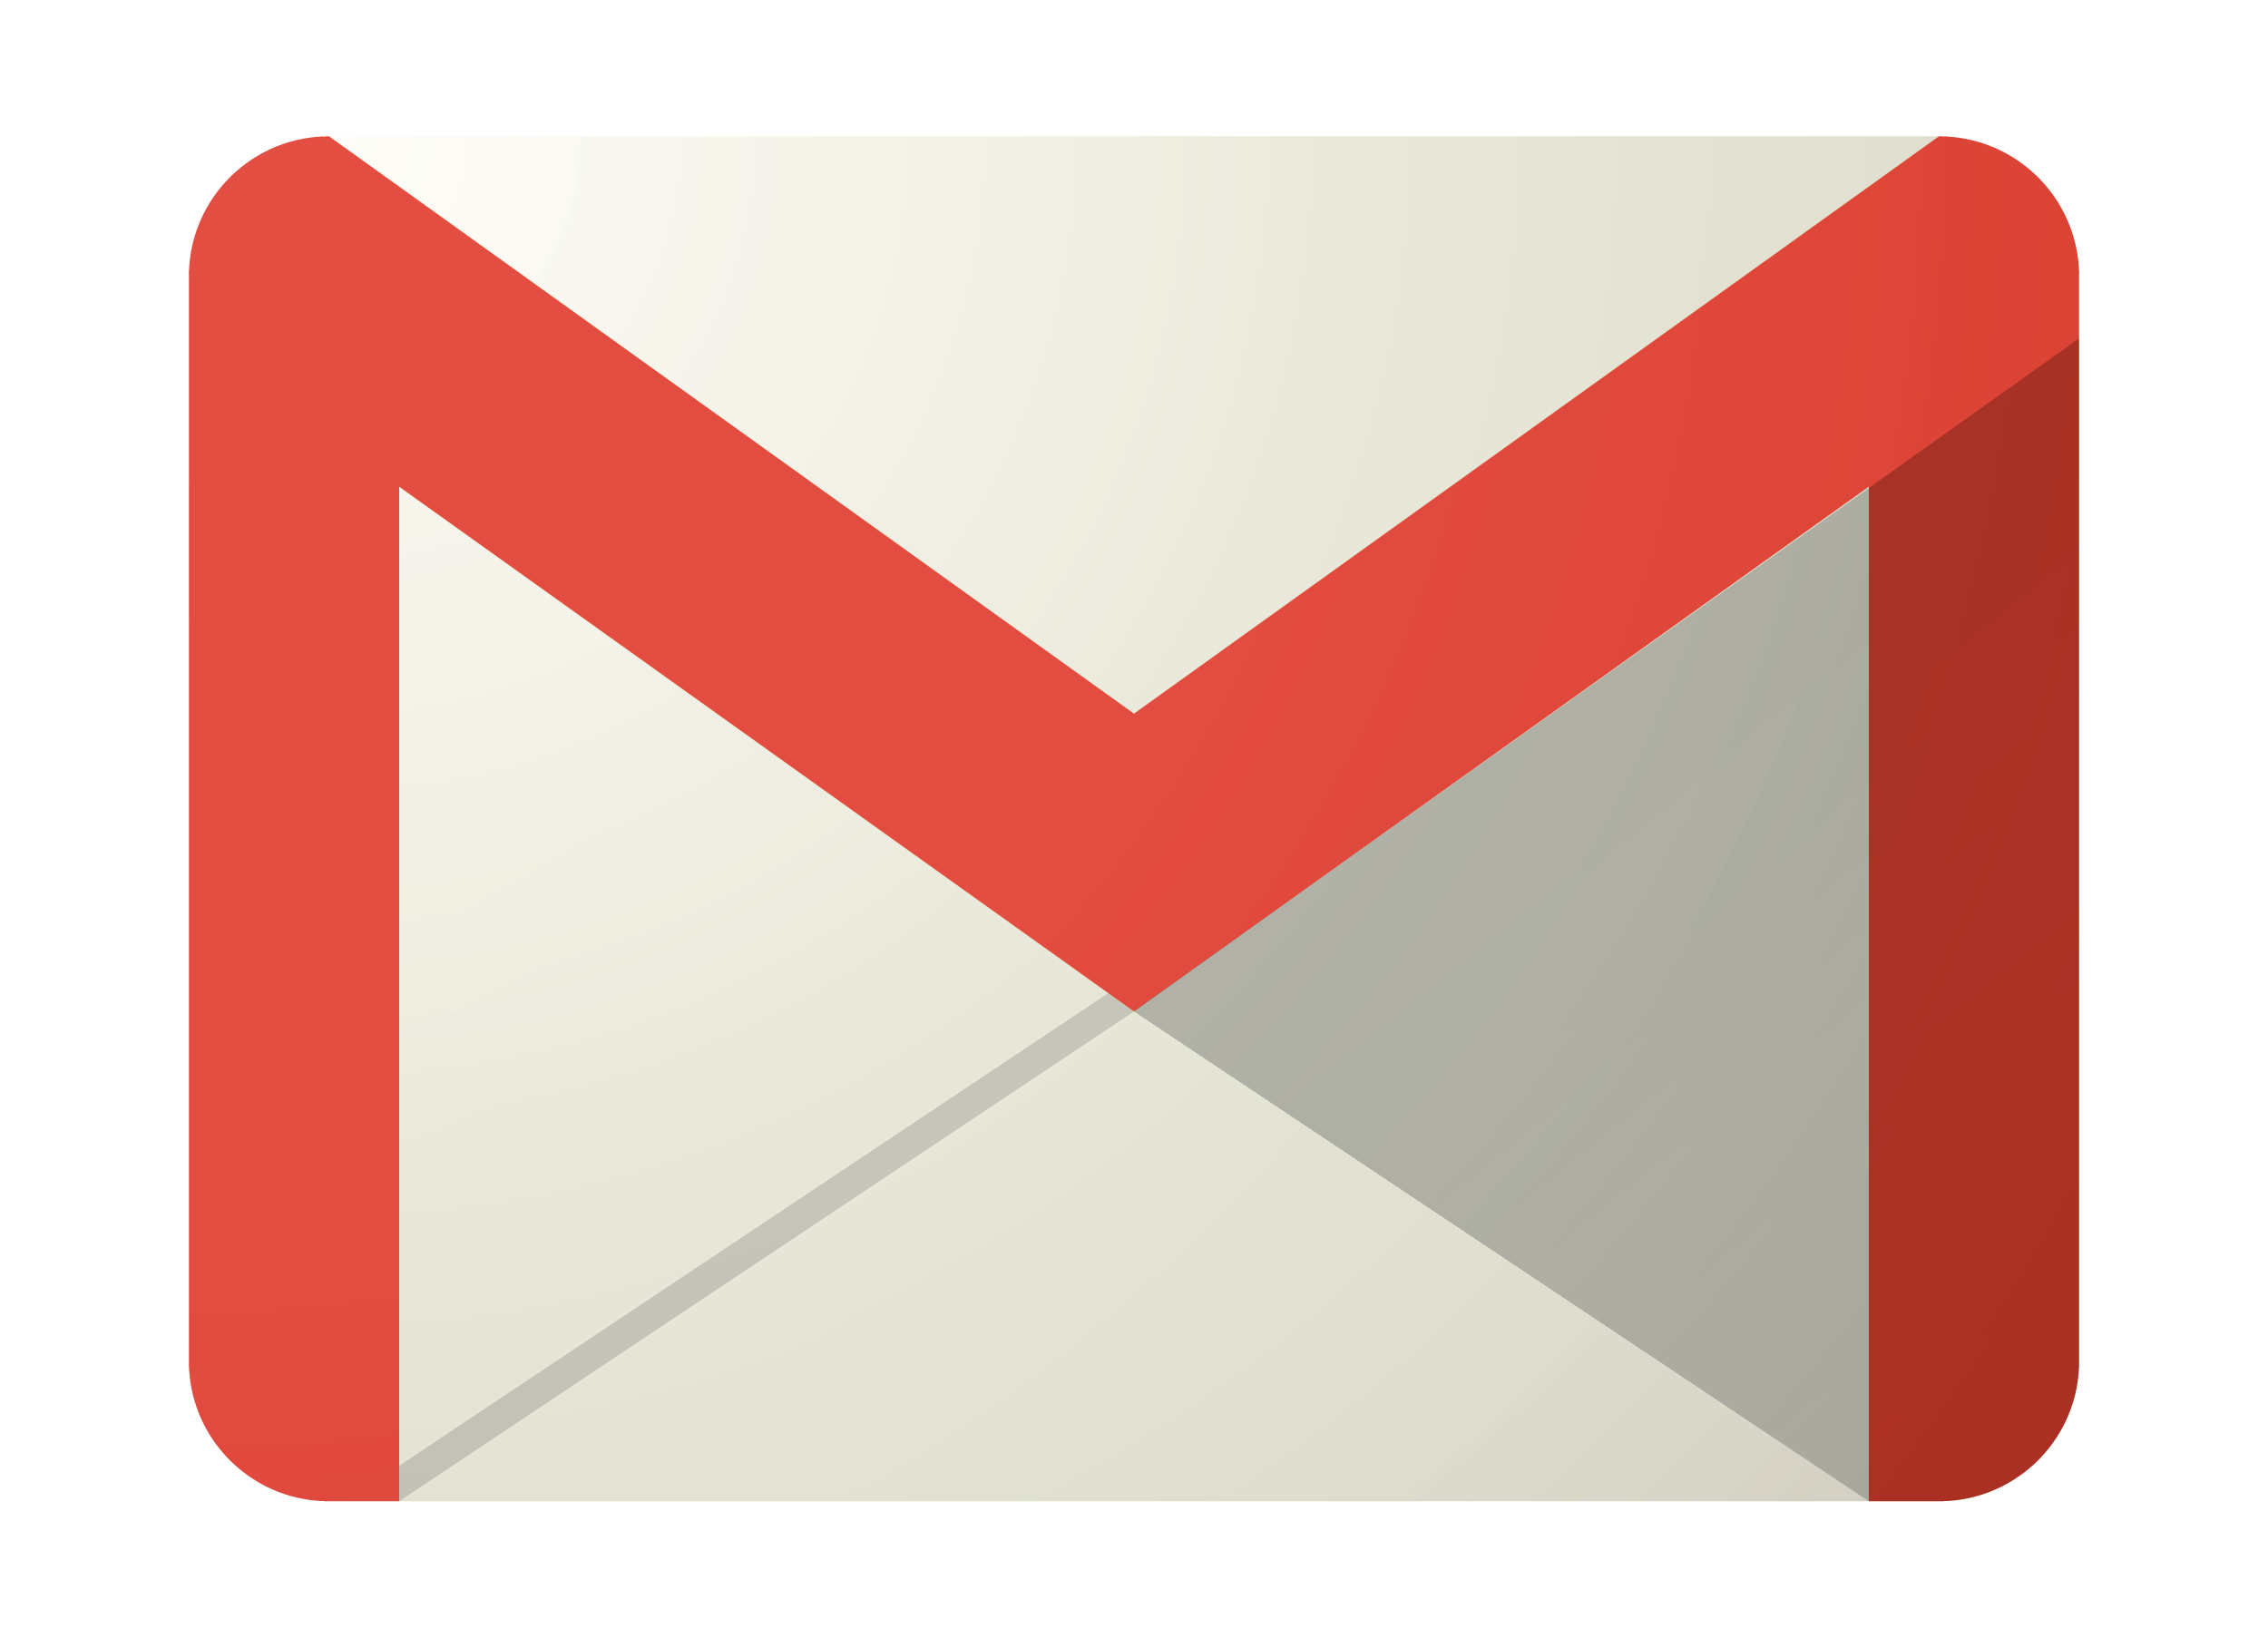 Email PNG Image Without Background